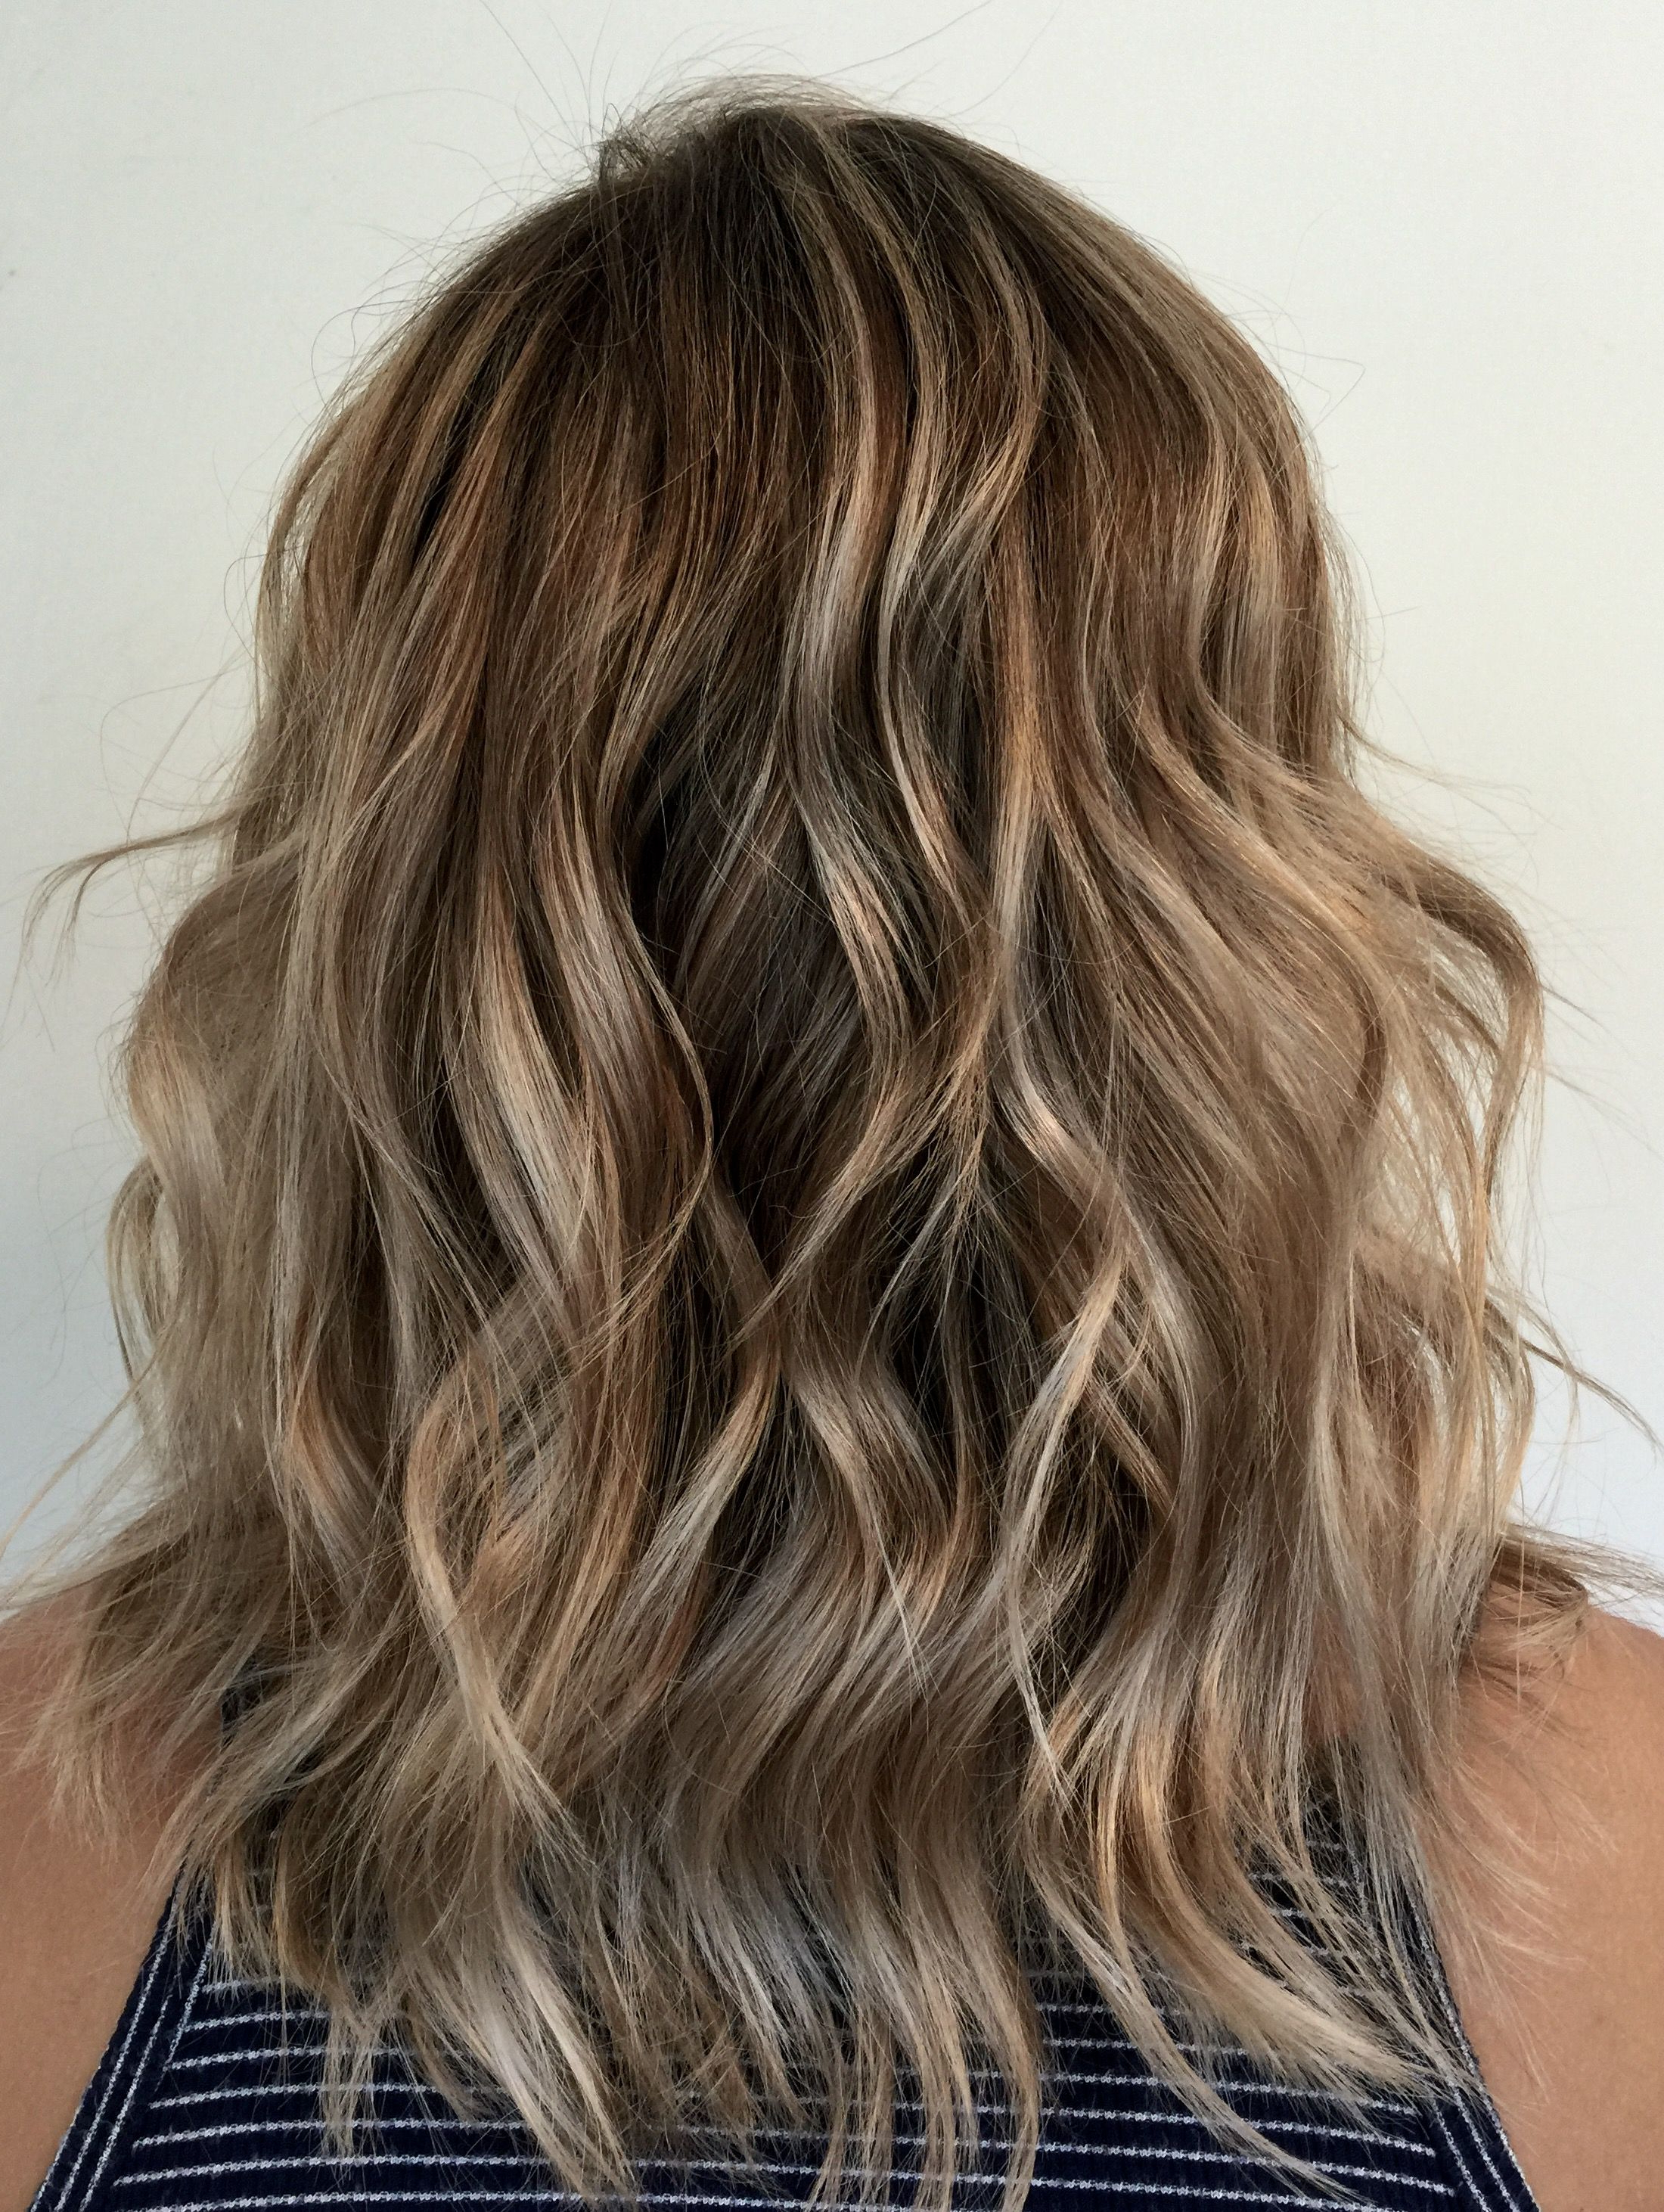 Dirty Blonde | Lob Haircut | Textured | Content In 2018 | Pinterest For Dark Blonde Short Curly Hairstyles (Gallery 3 of 20)